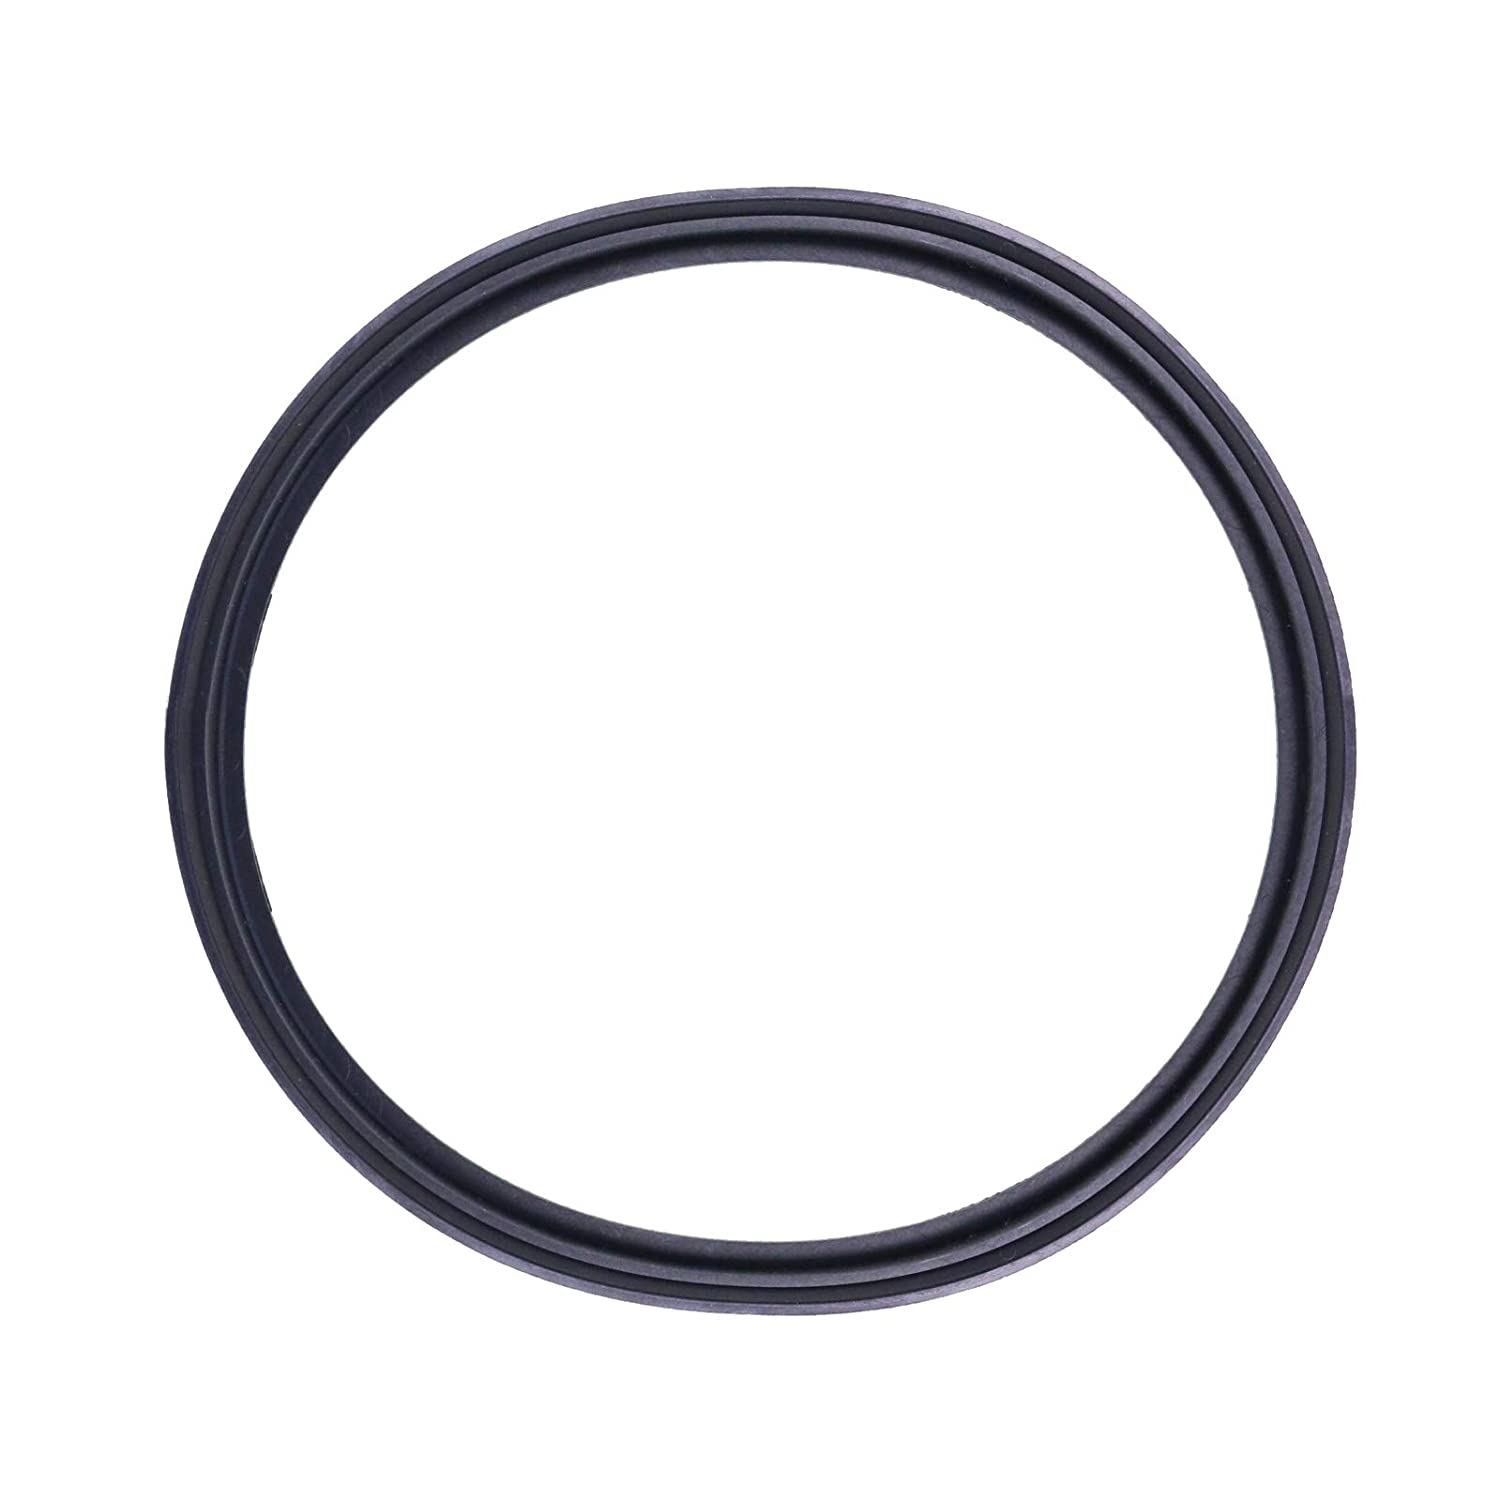 2018 HFP-TS14 Fuel Tank Seal//Gasket Replacement for Yamaha Wolverine X4 YXF85 Replaces B16-13907-00-00 HFP-TS14-1077